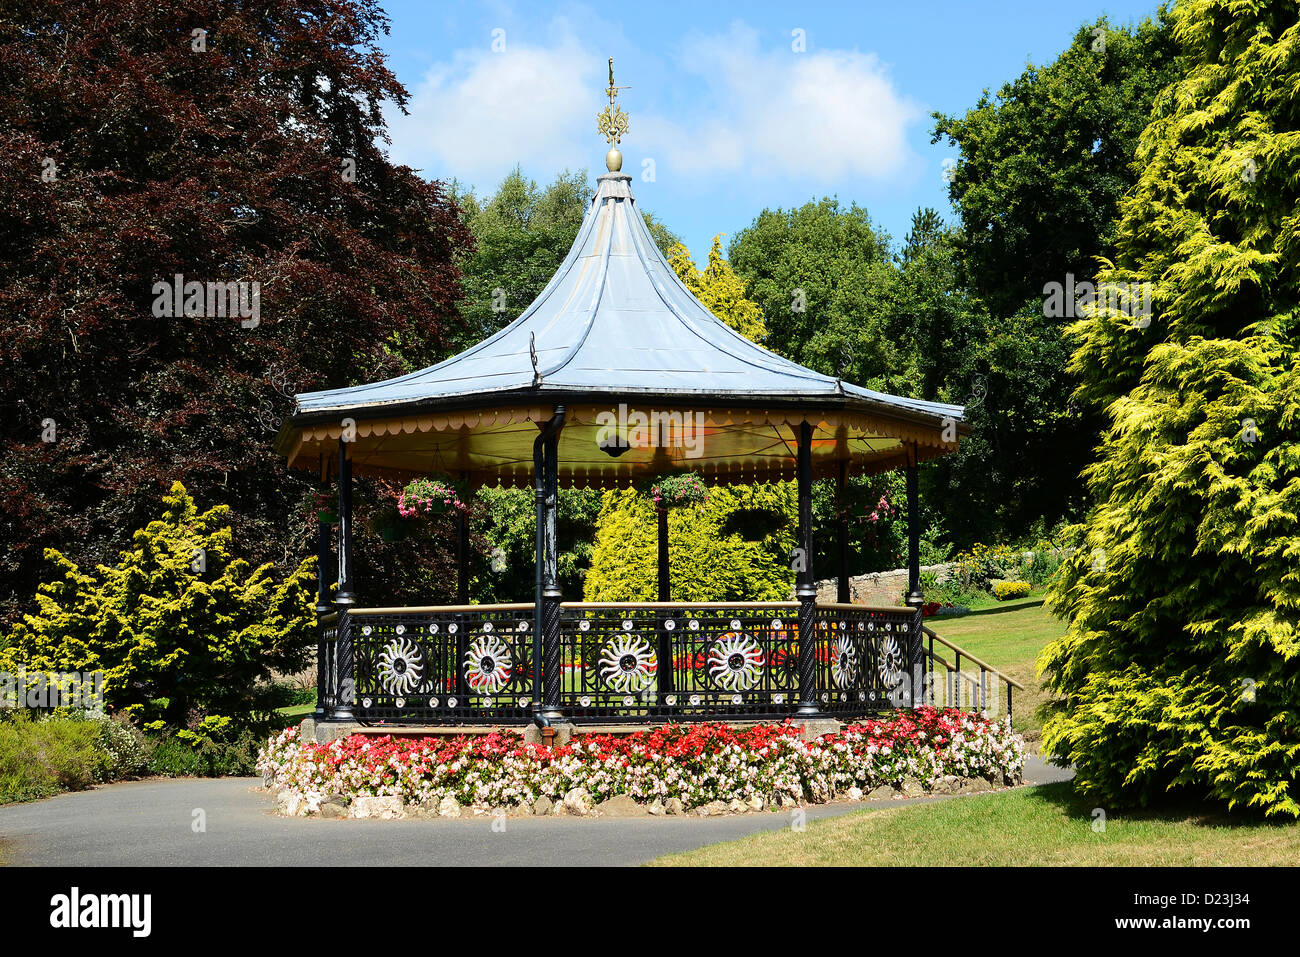 the bandstand in victoria gardens, truro, cornwall, uk - Stock Image